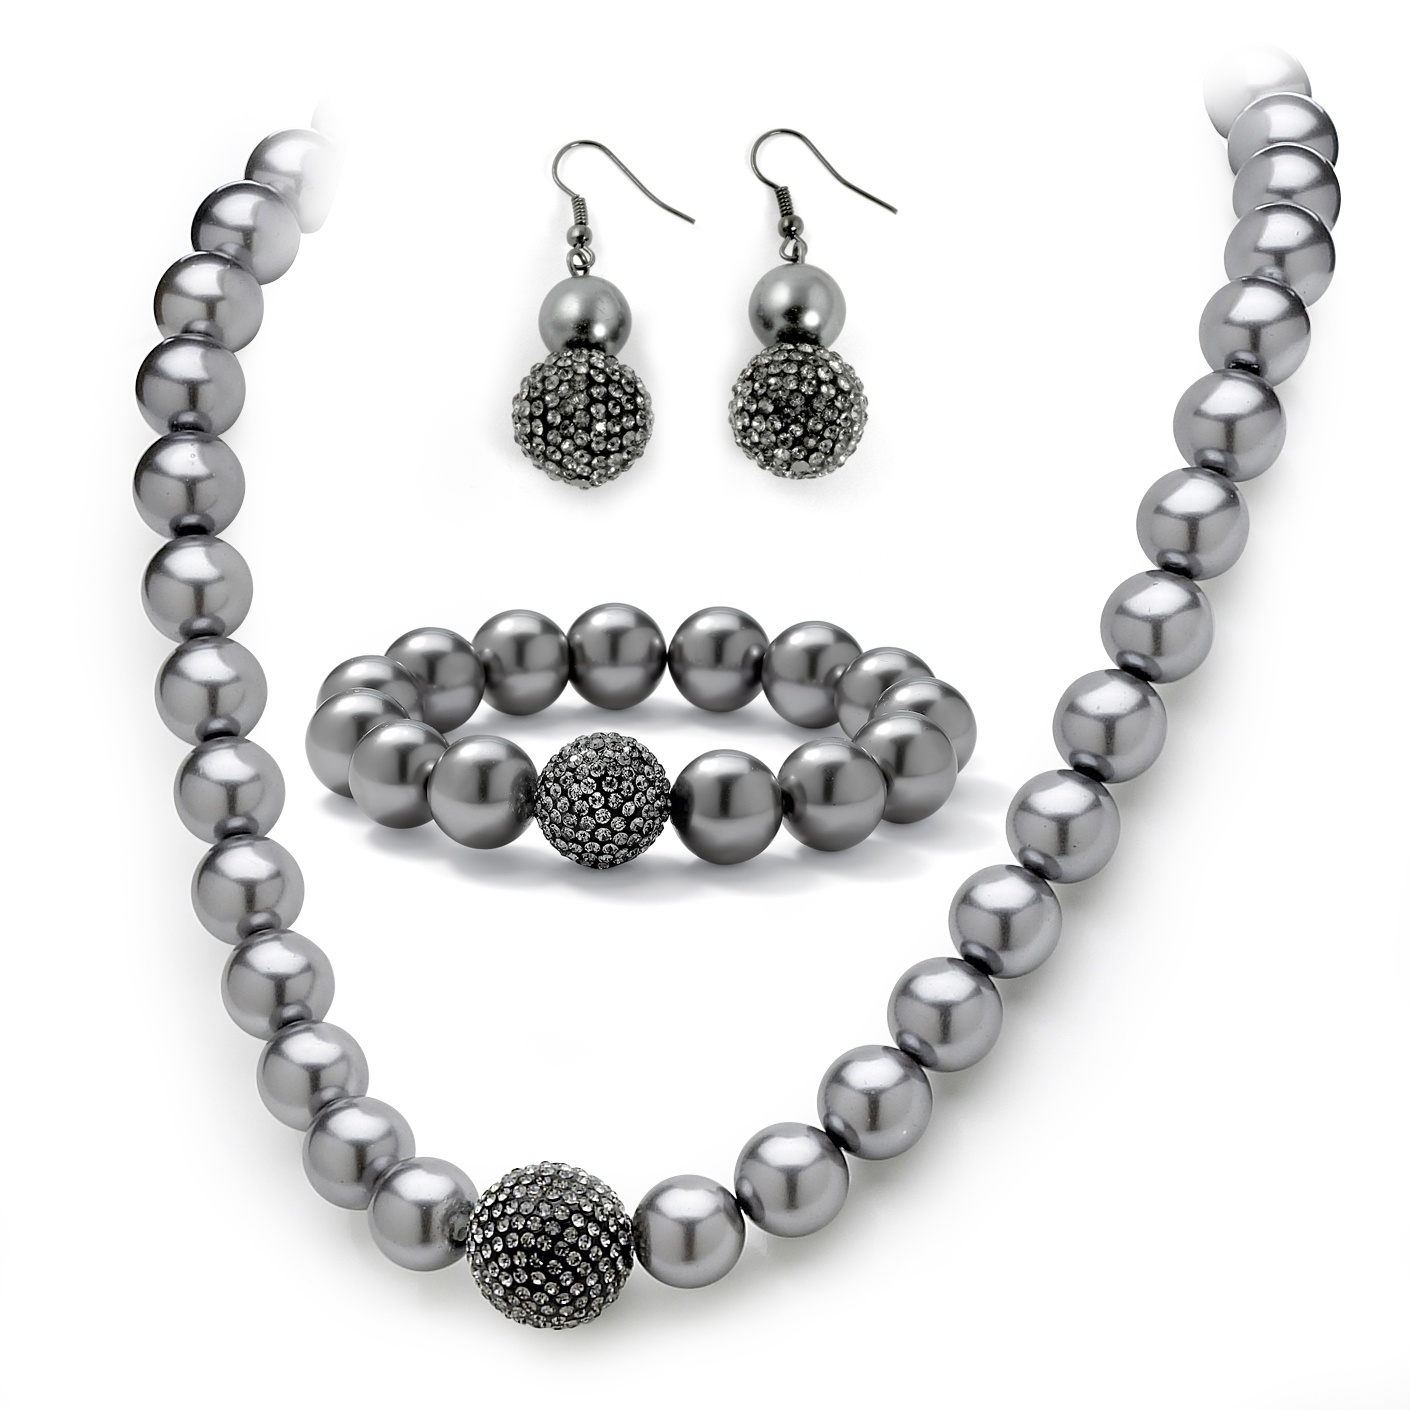 Grey Pearl And Crystal Necklace Bracelet Earrings Three